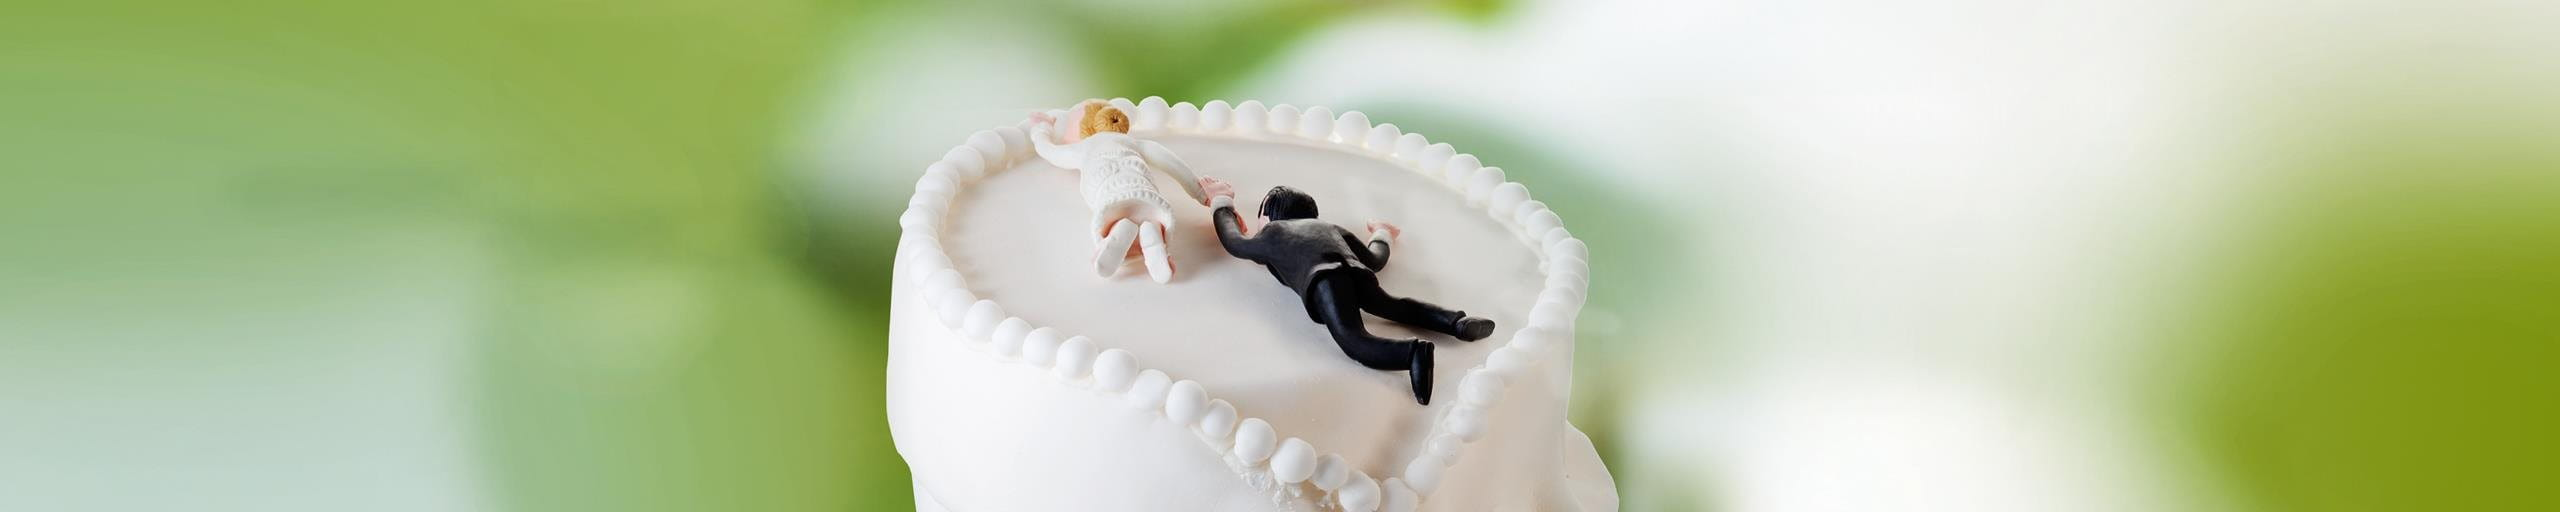 A wedding cake decorated with bride and groom figurines.